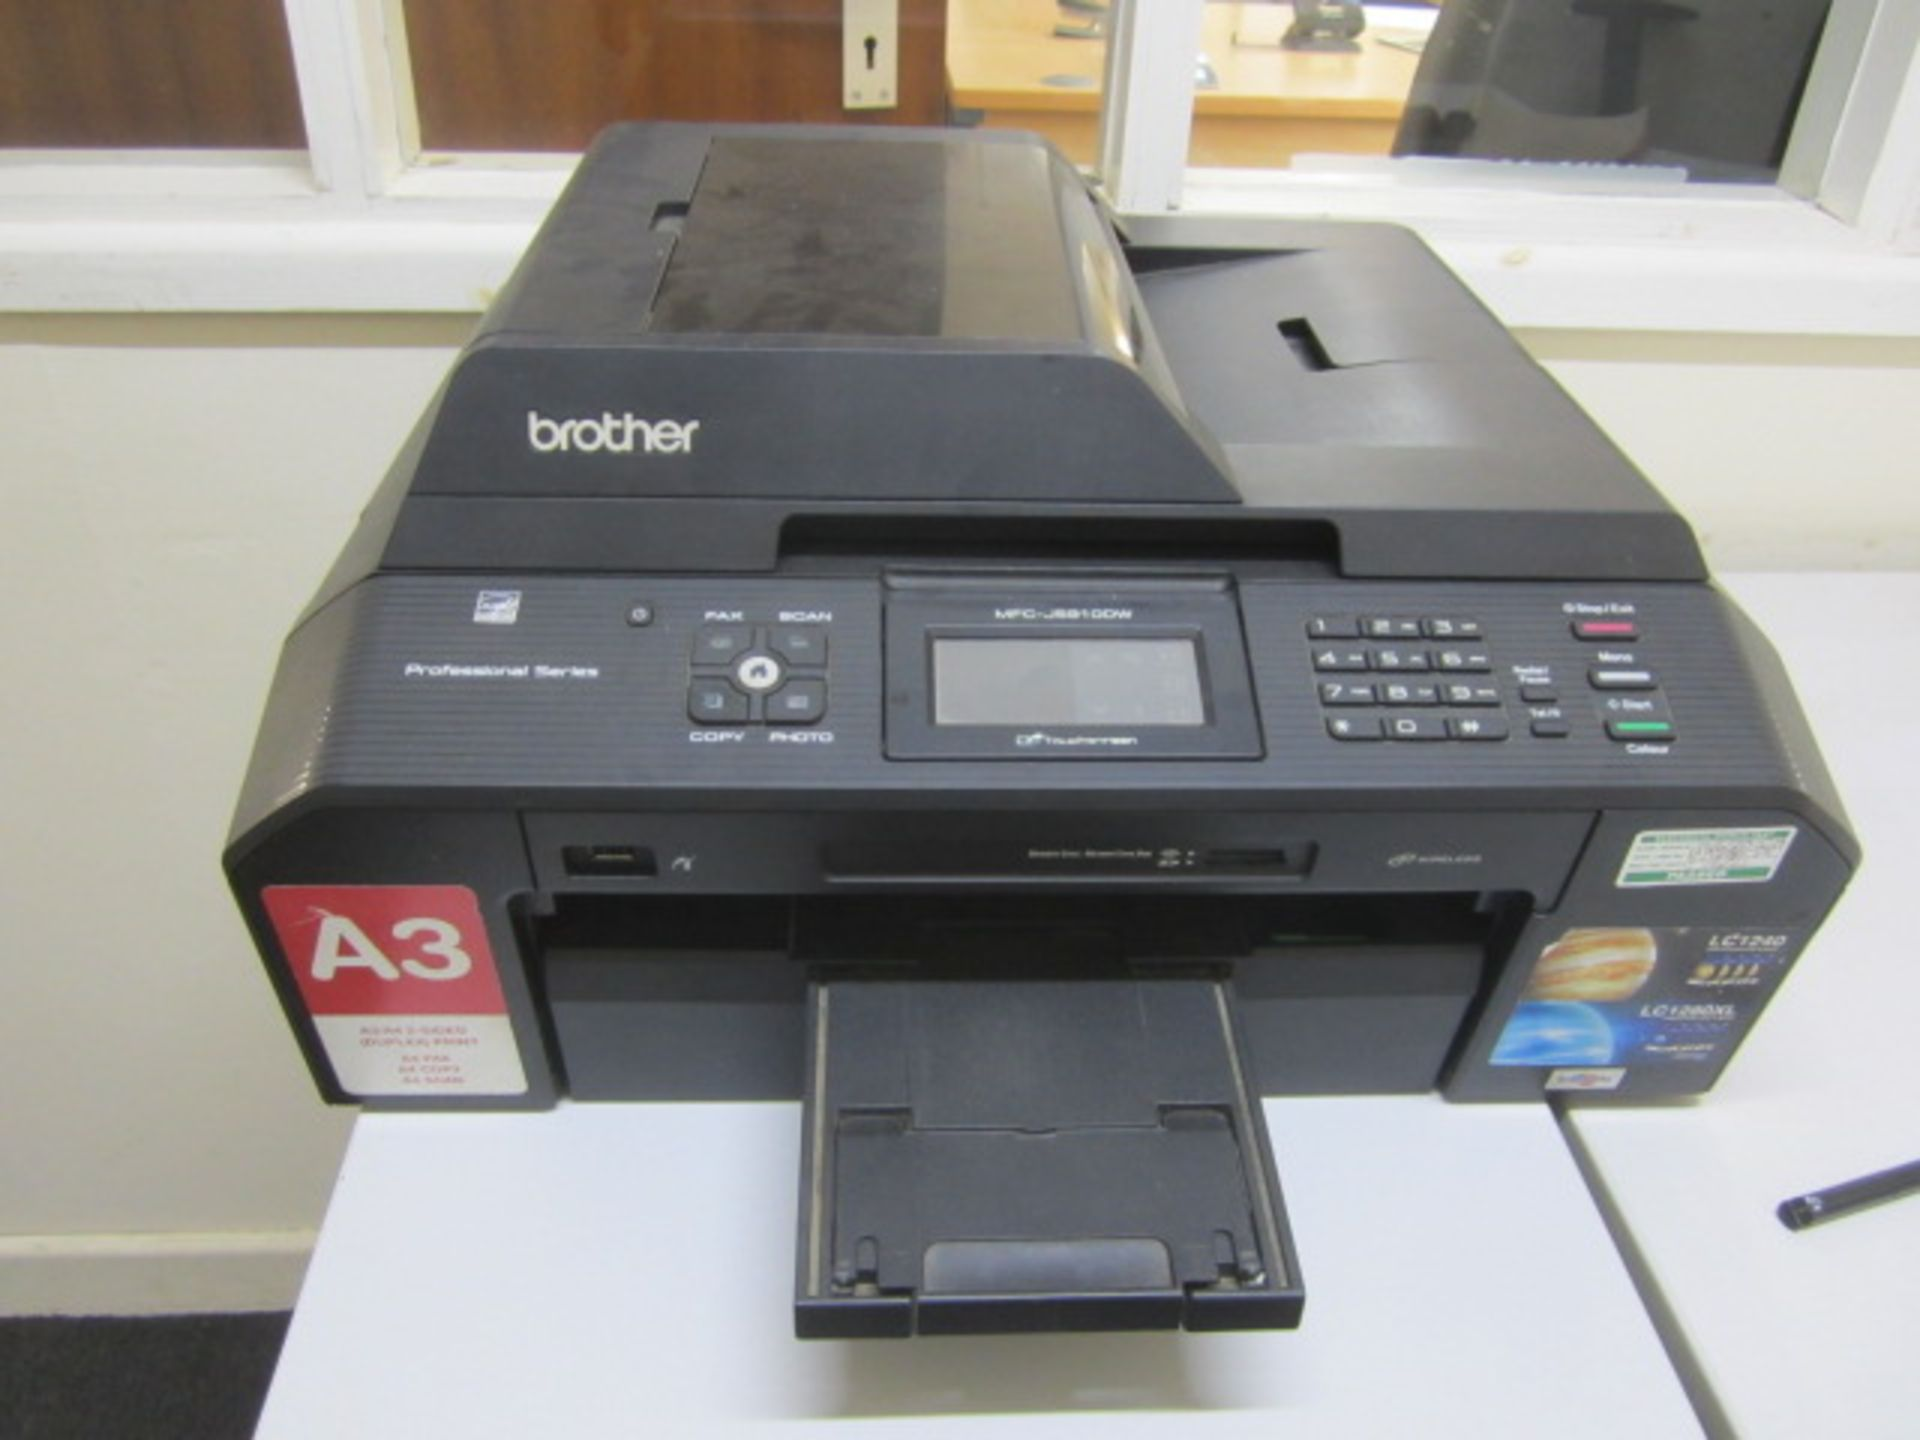 Brother MFC-J5910 DW fax, scan, copy and copier